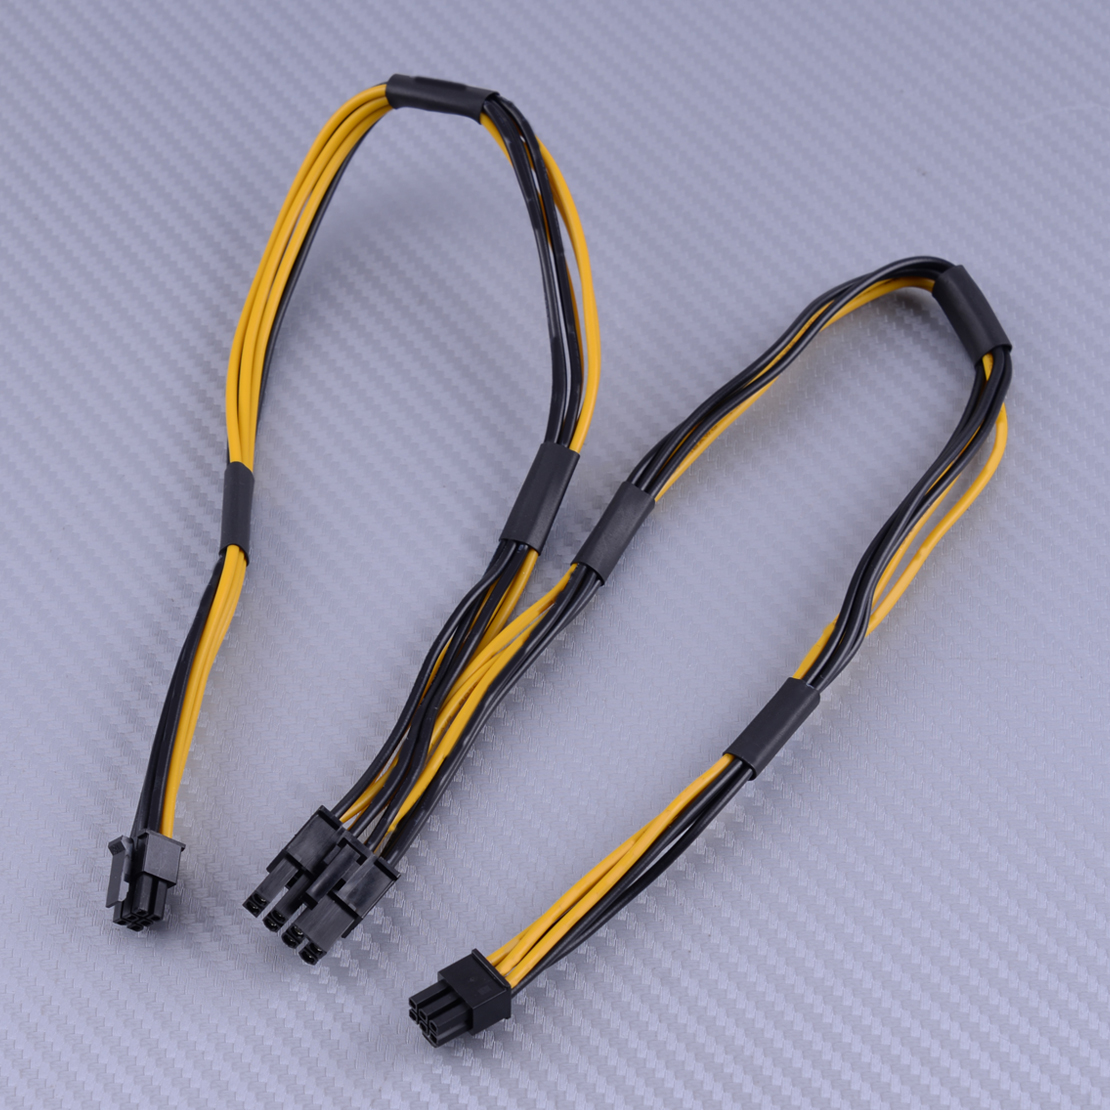 Dual mini  6 PIN male to 8 PIN male PCI-E POWER CABLE AWG#16  MADE IN USA